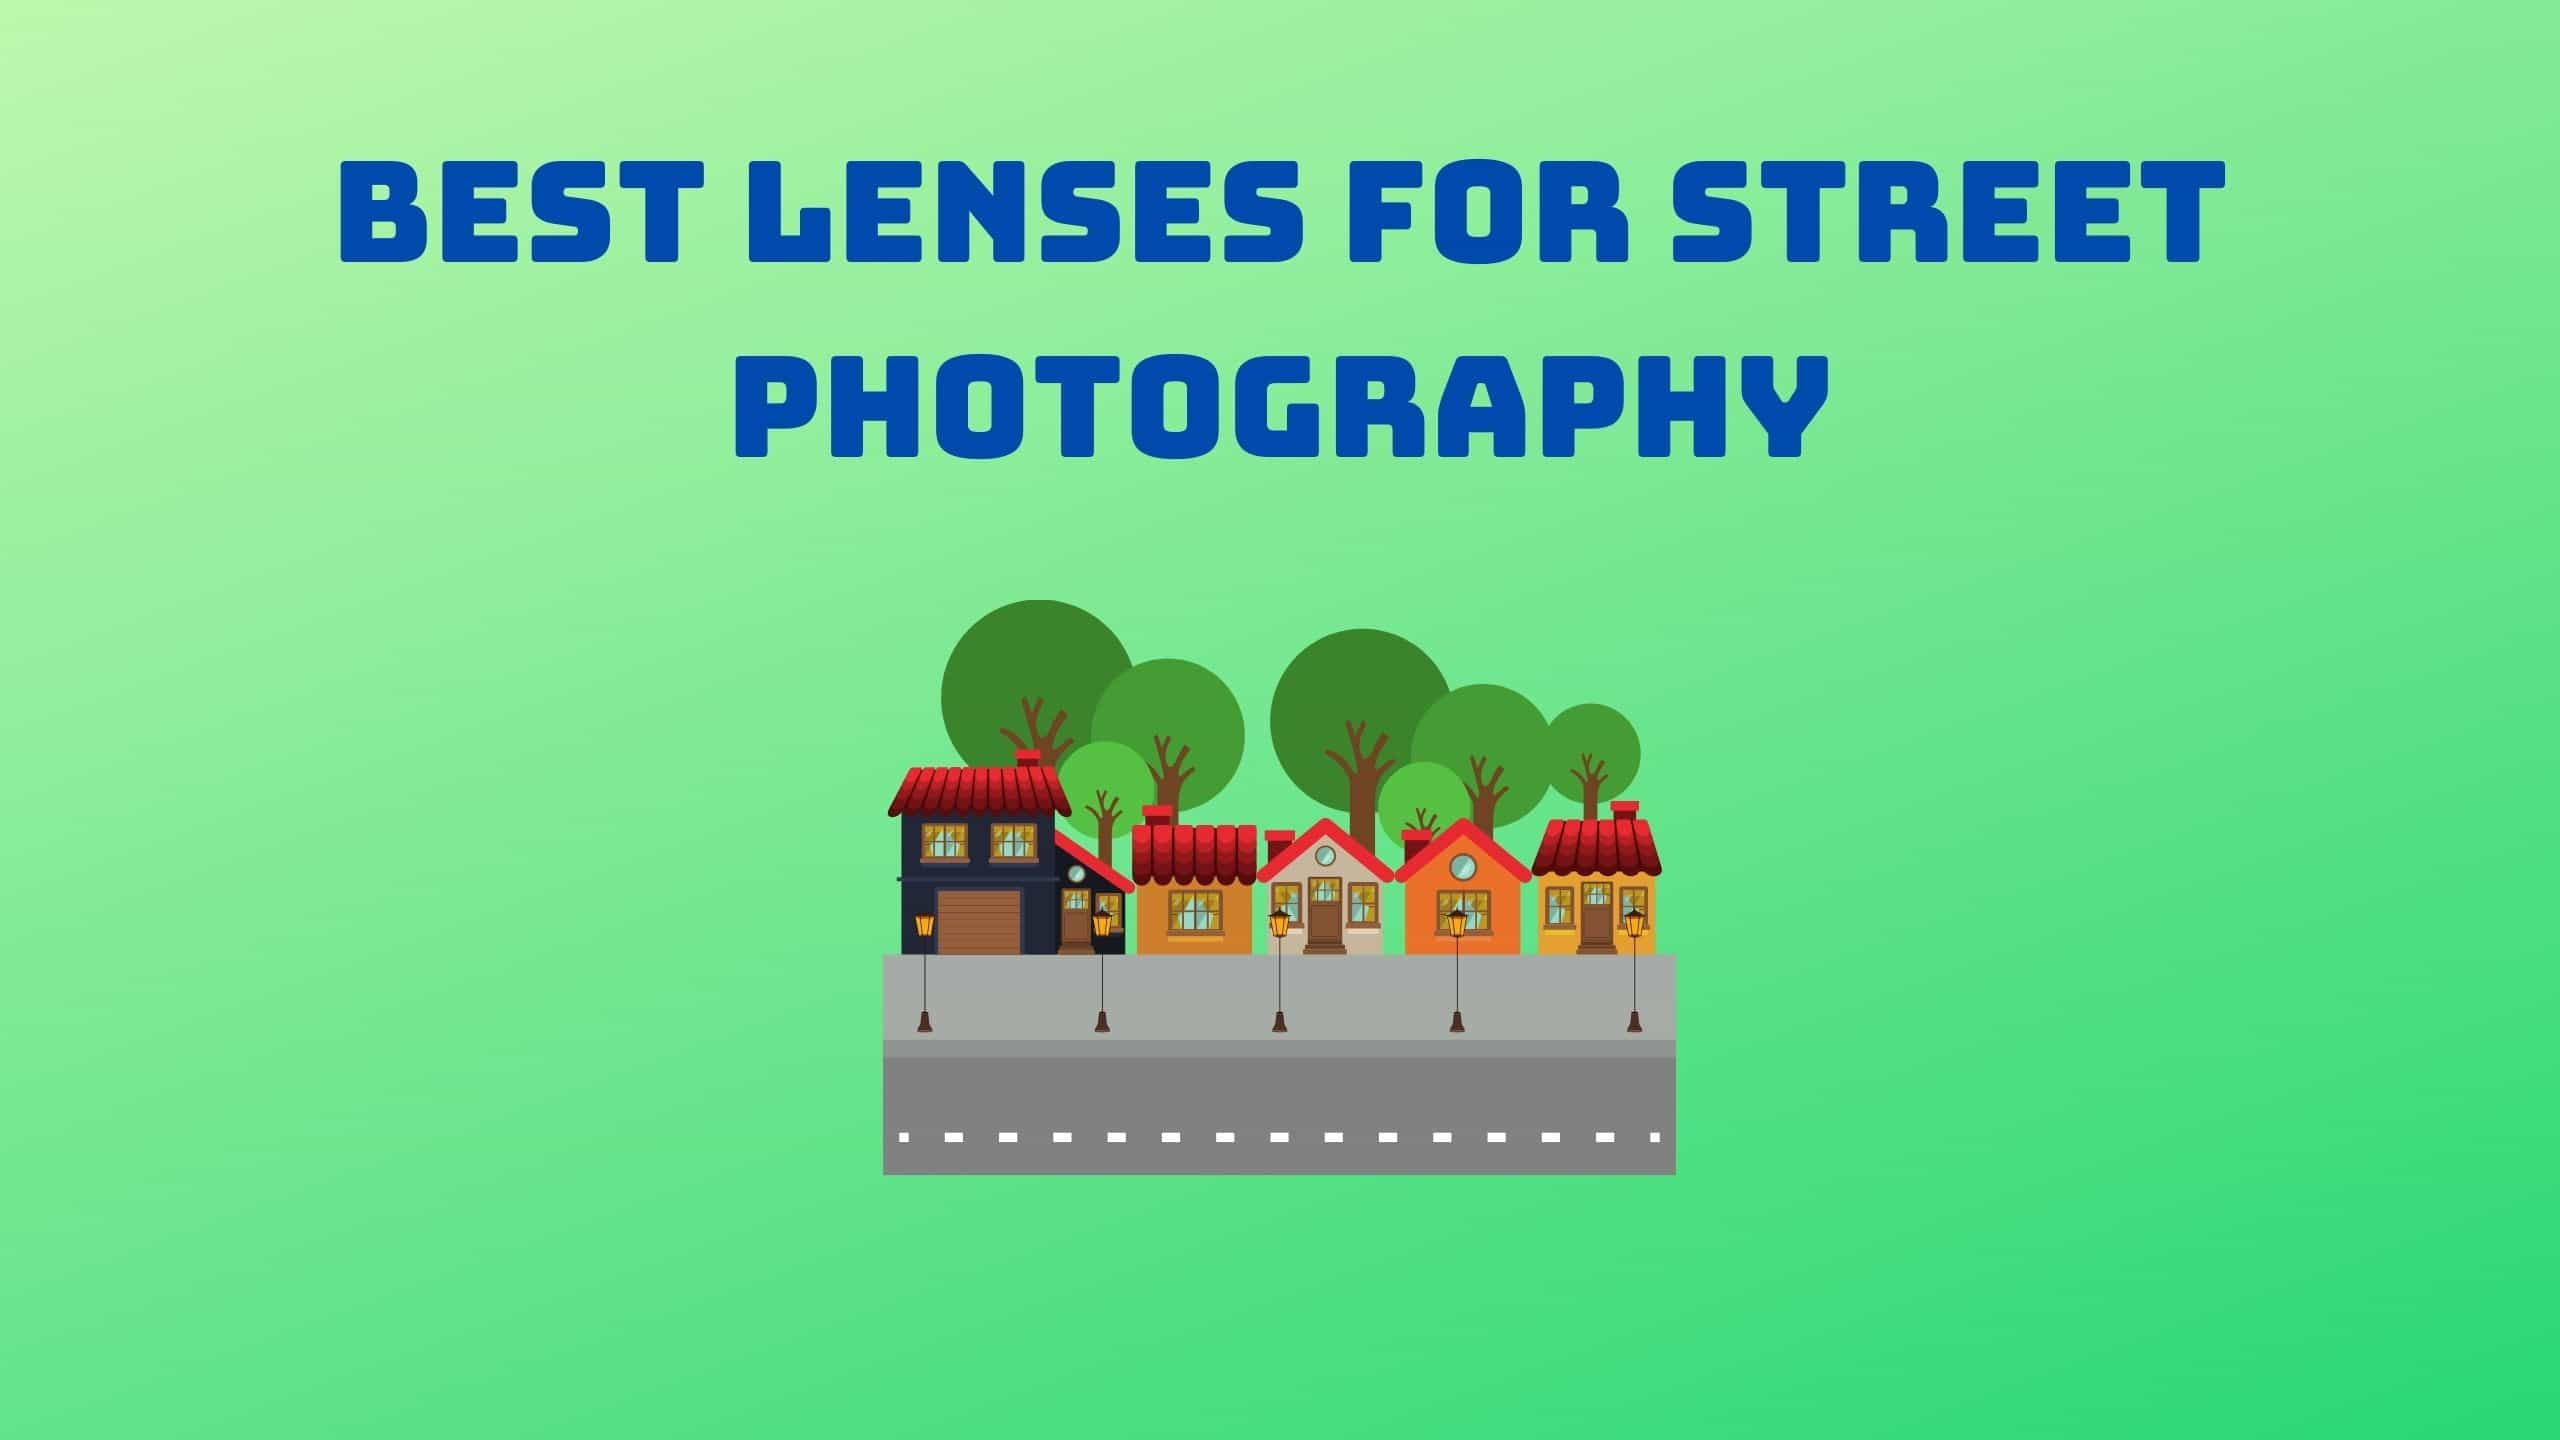 Best Lenses for Street Photography (1)